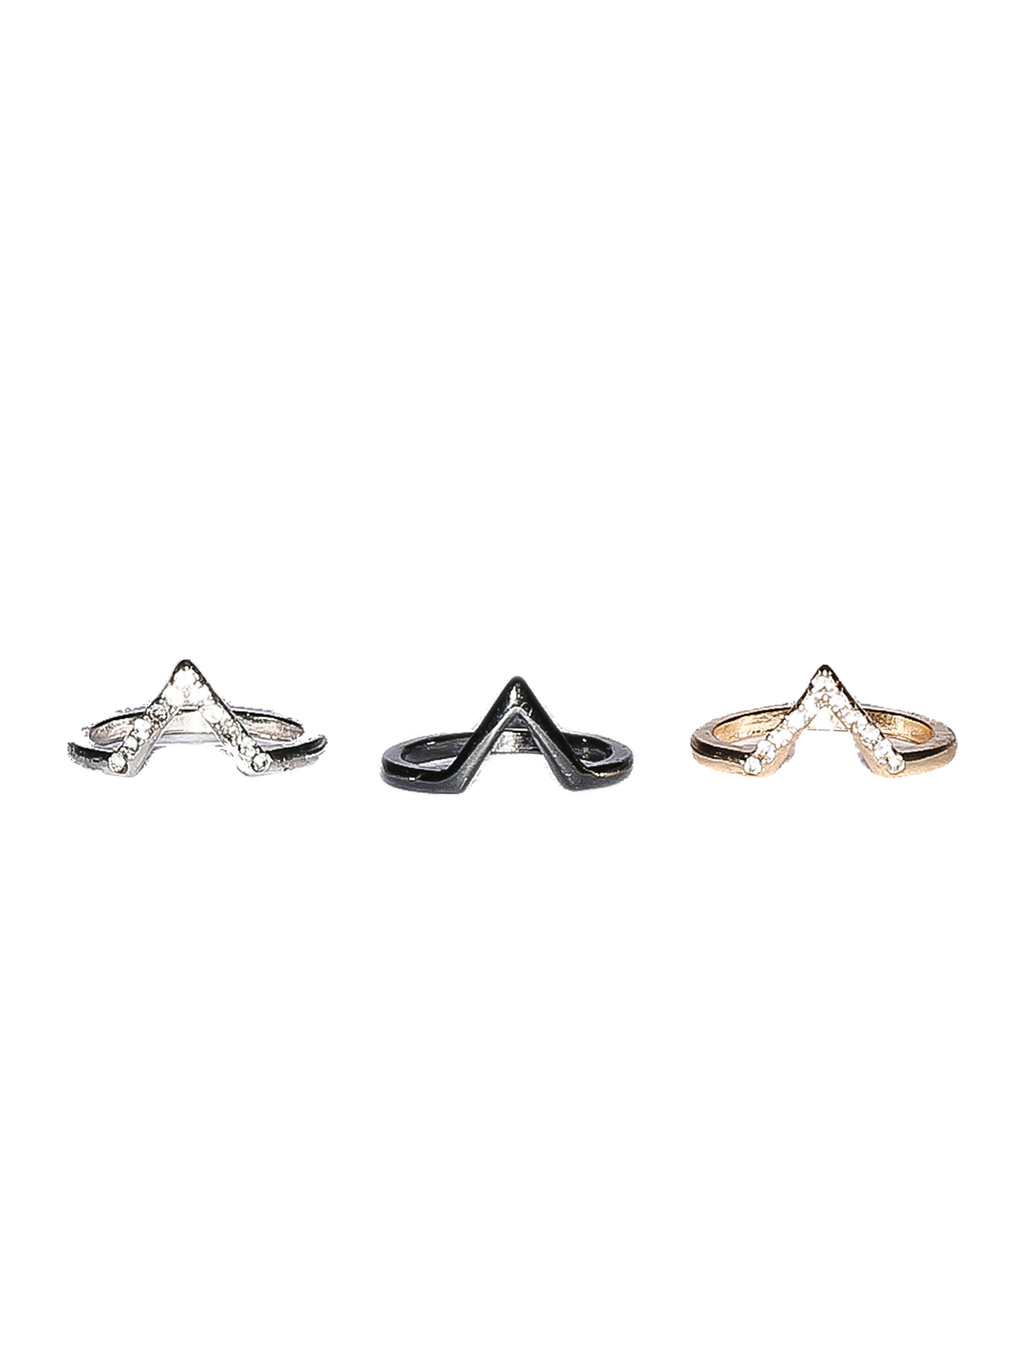 Trio Midi Ring Set